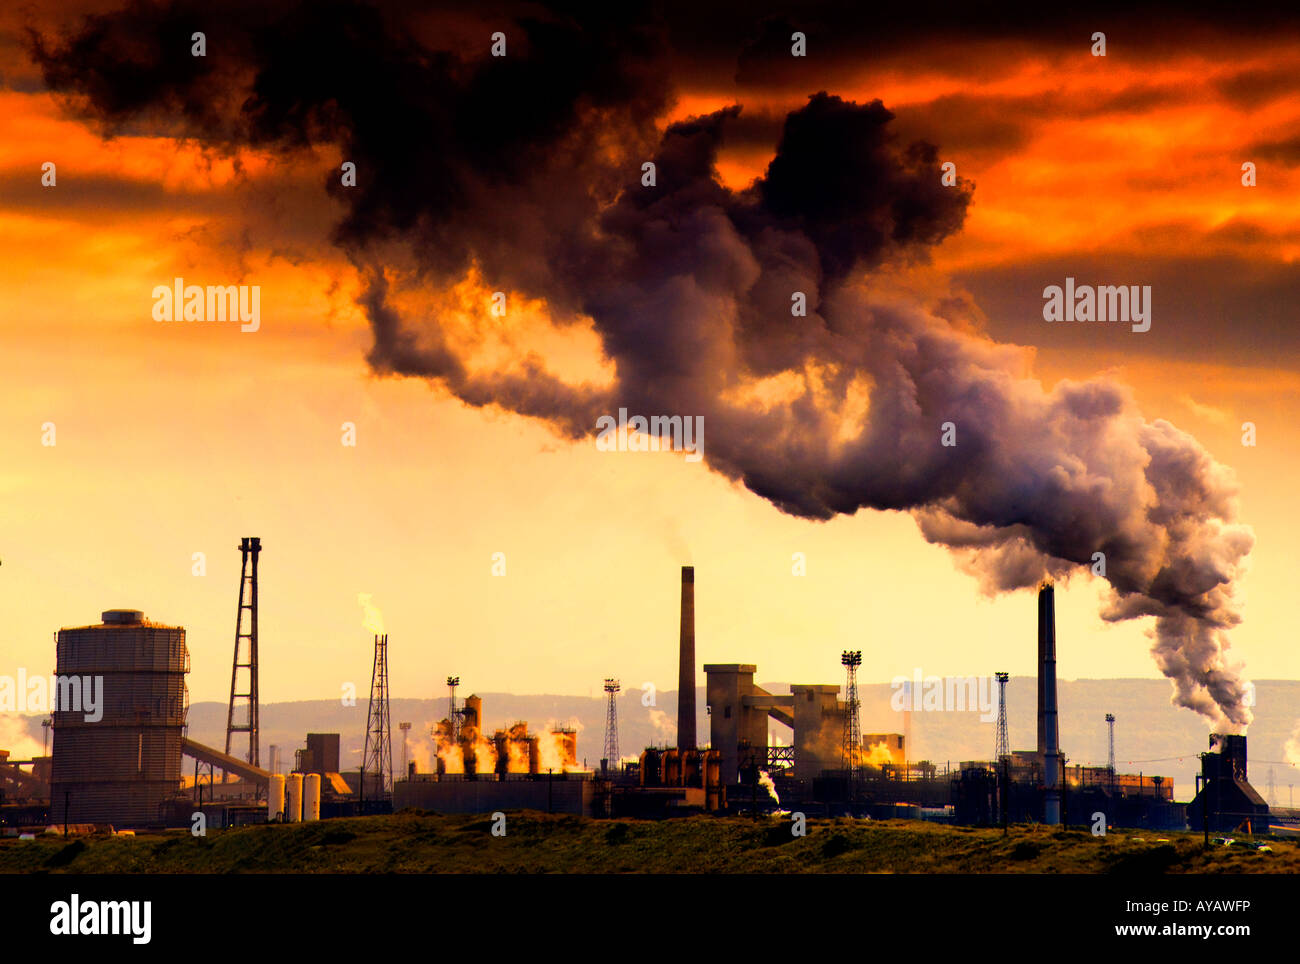 Smoking chimney showing pollution Stock Photo